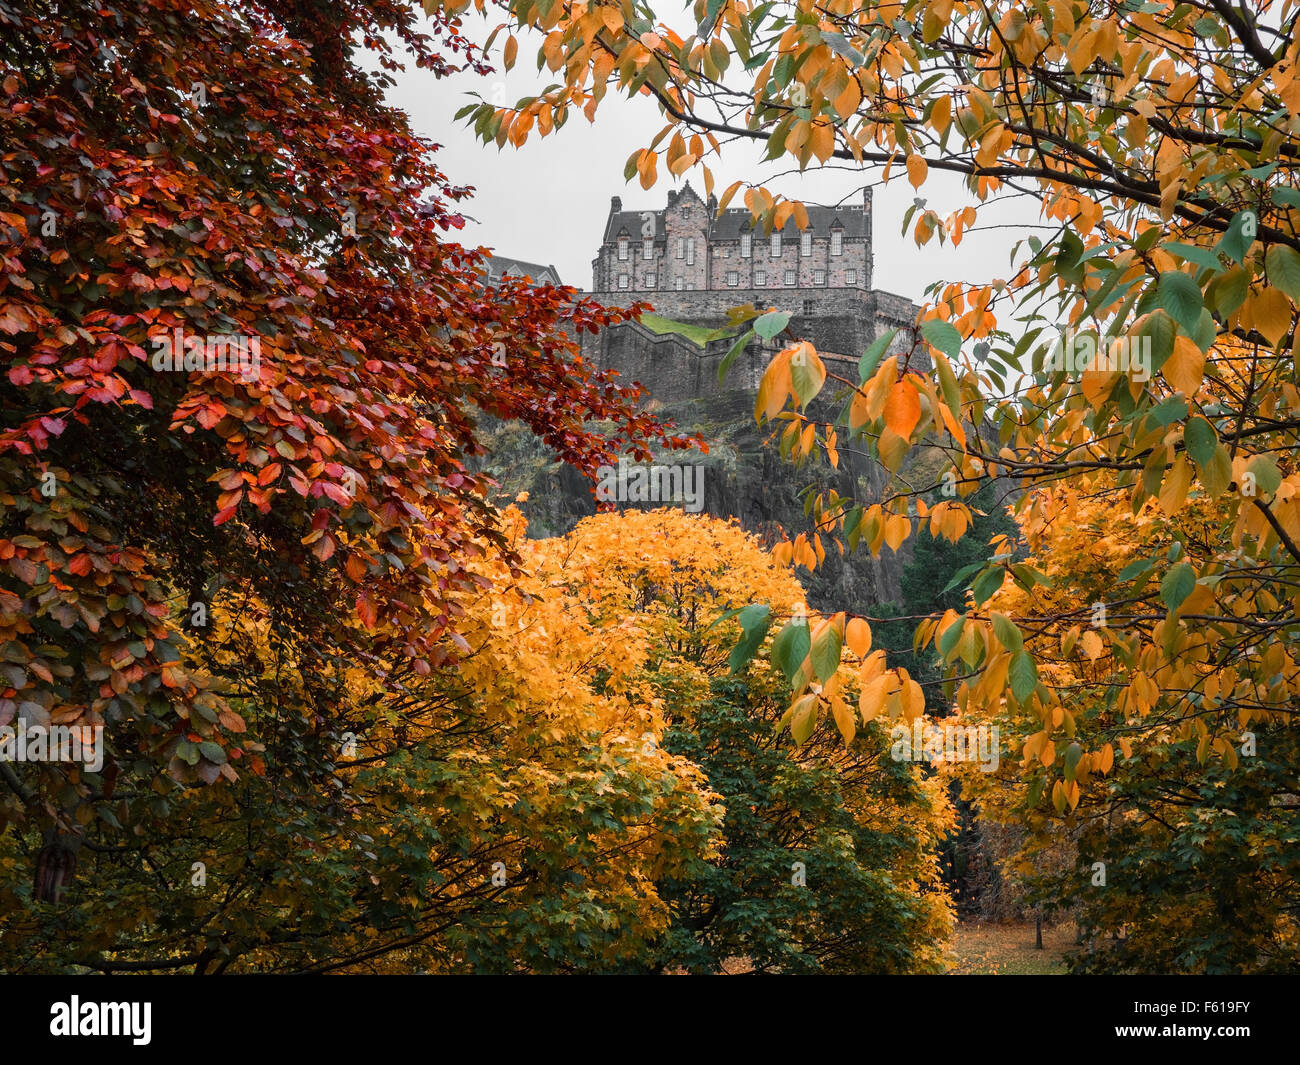 Edinburgh castle through the autumn trees in Princes Street Gardens. - Stock Image